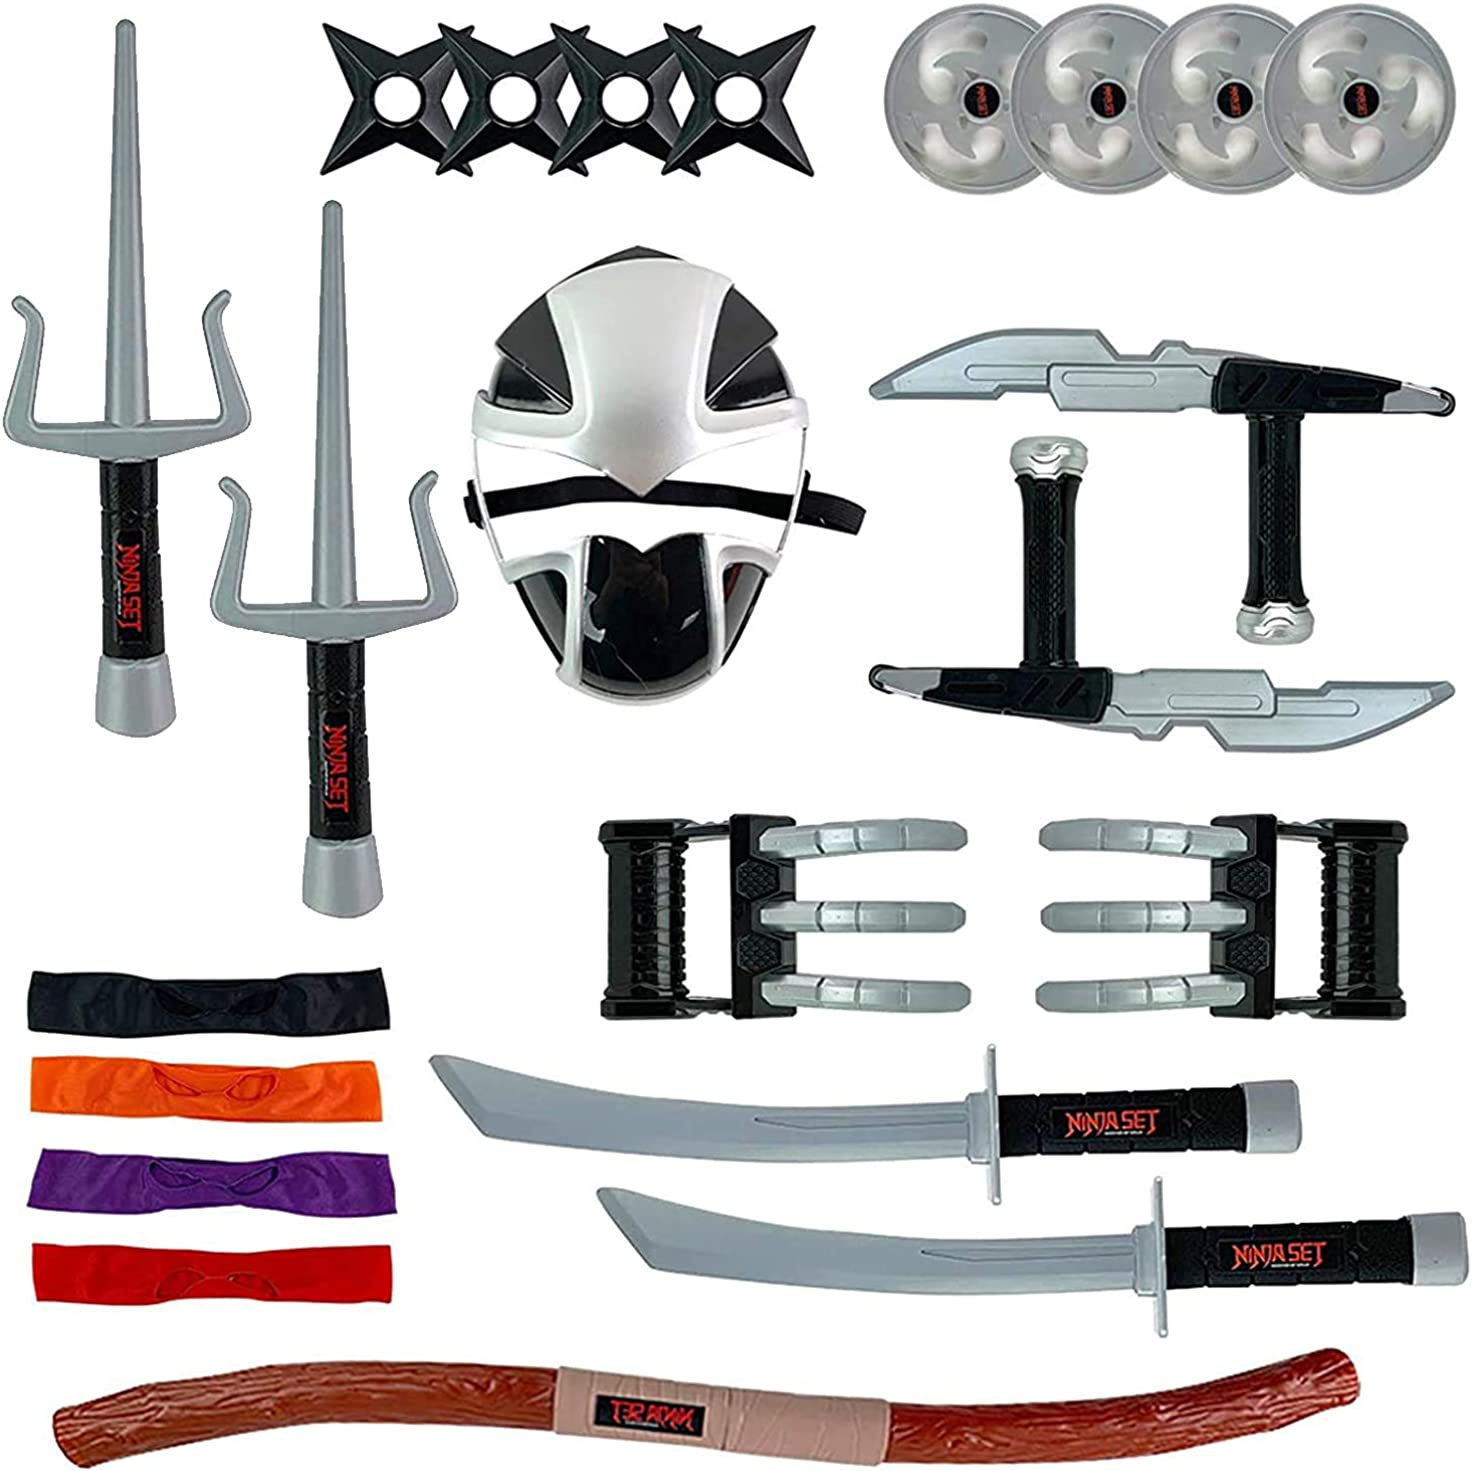 Dr.Wu DW-P31P Ninjia Swords Kits for SIXSHOT In stock Toy Accessories